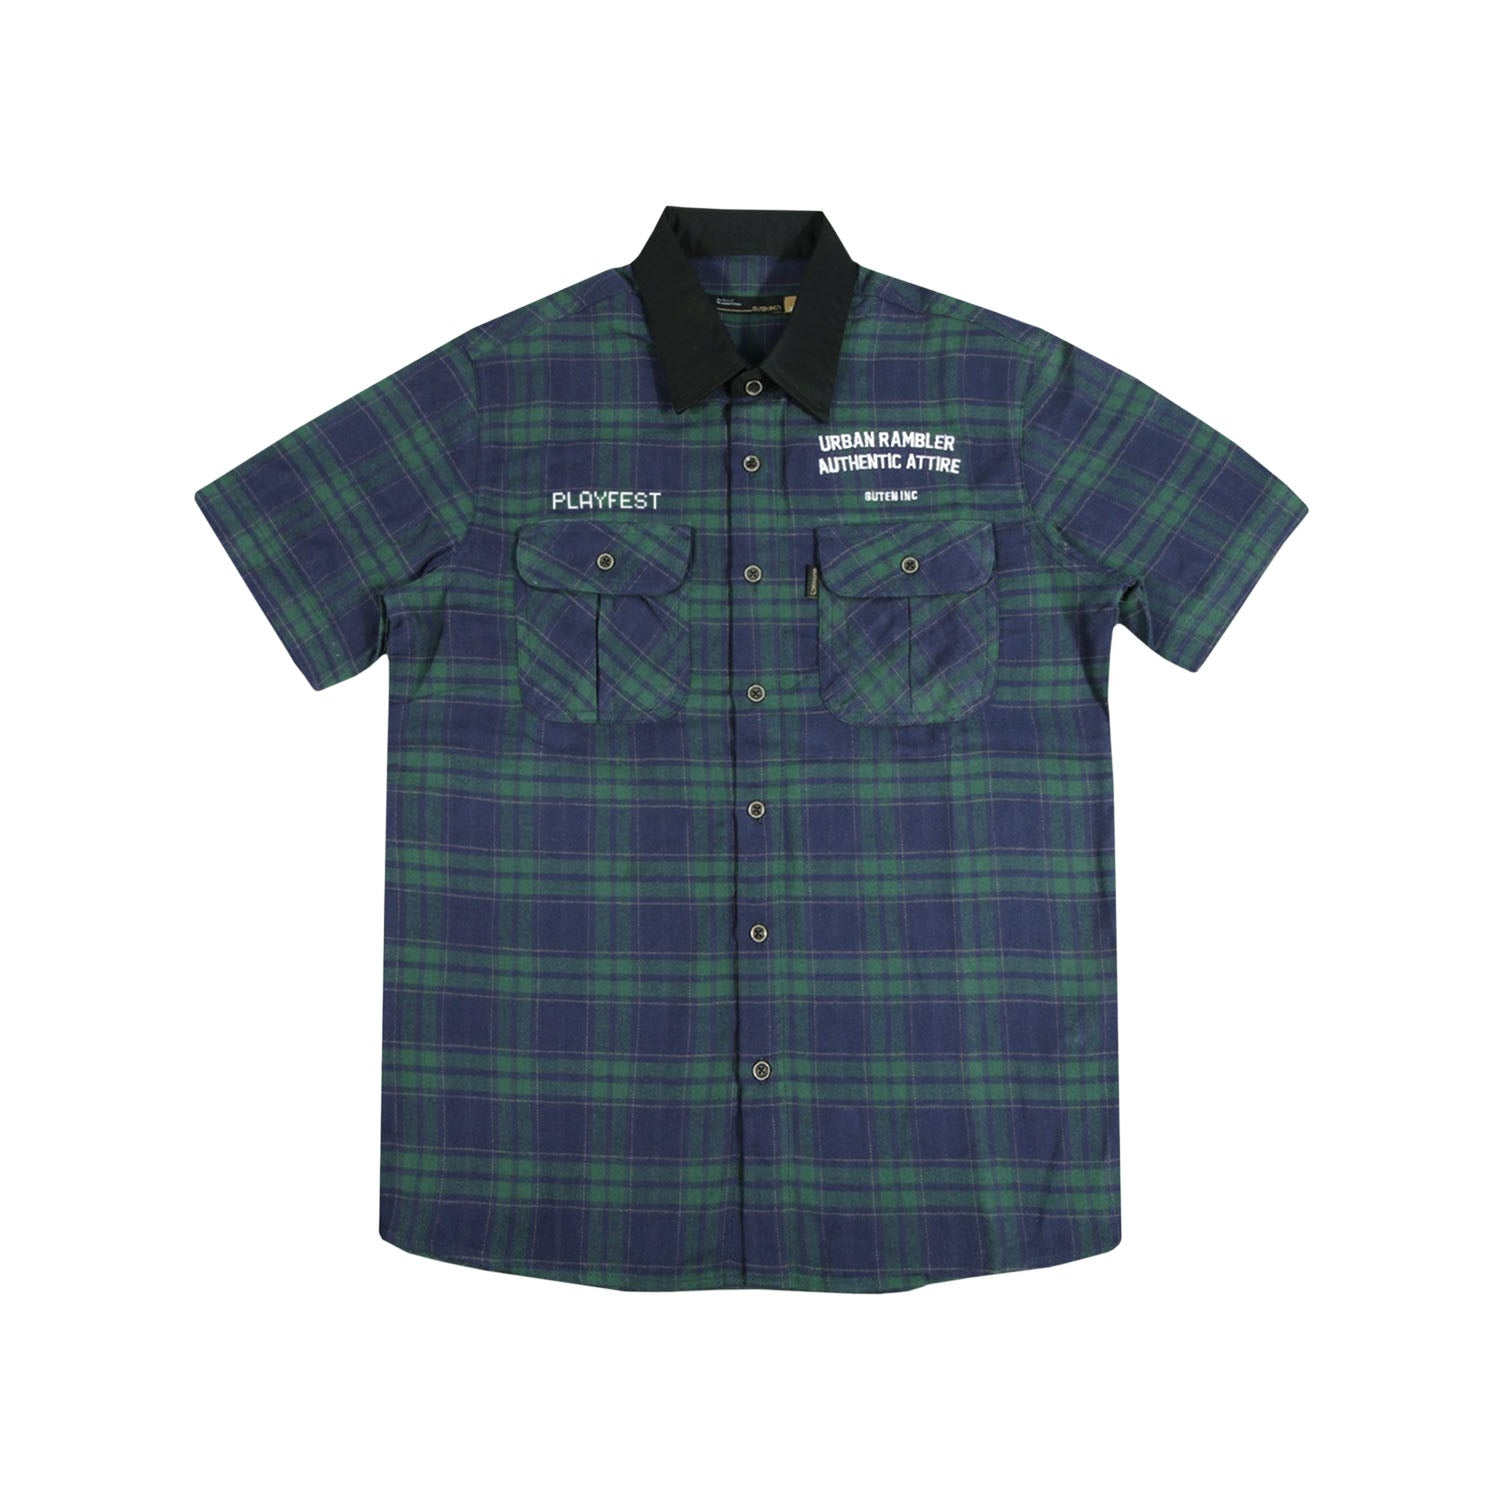 Playfest Navygreen Shirt